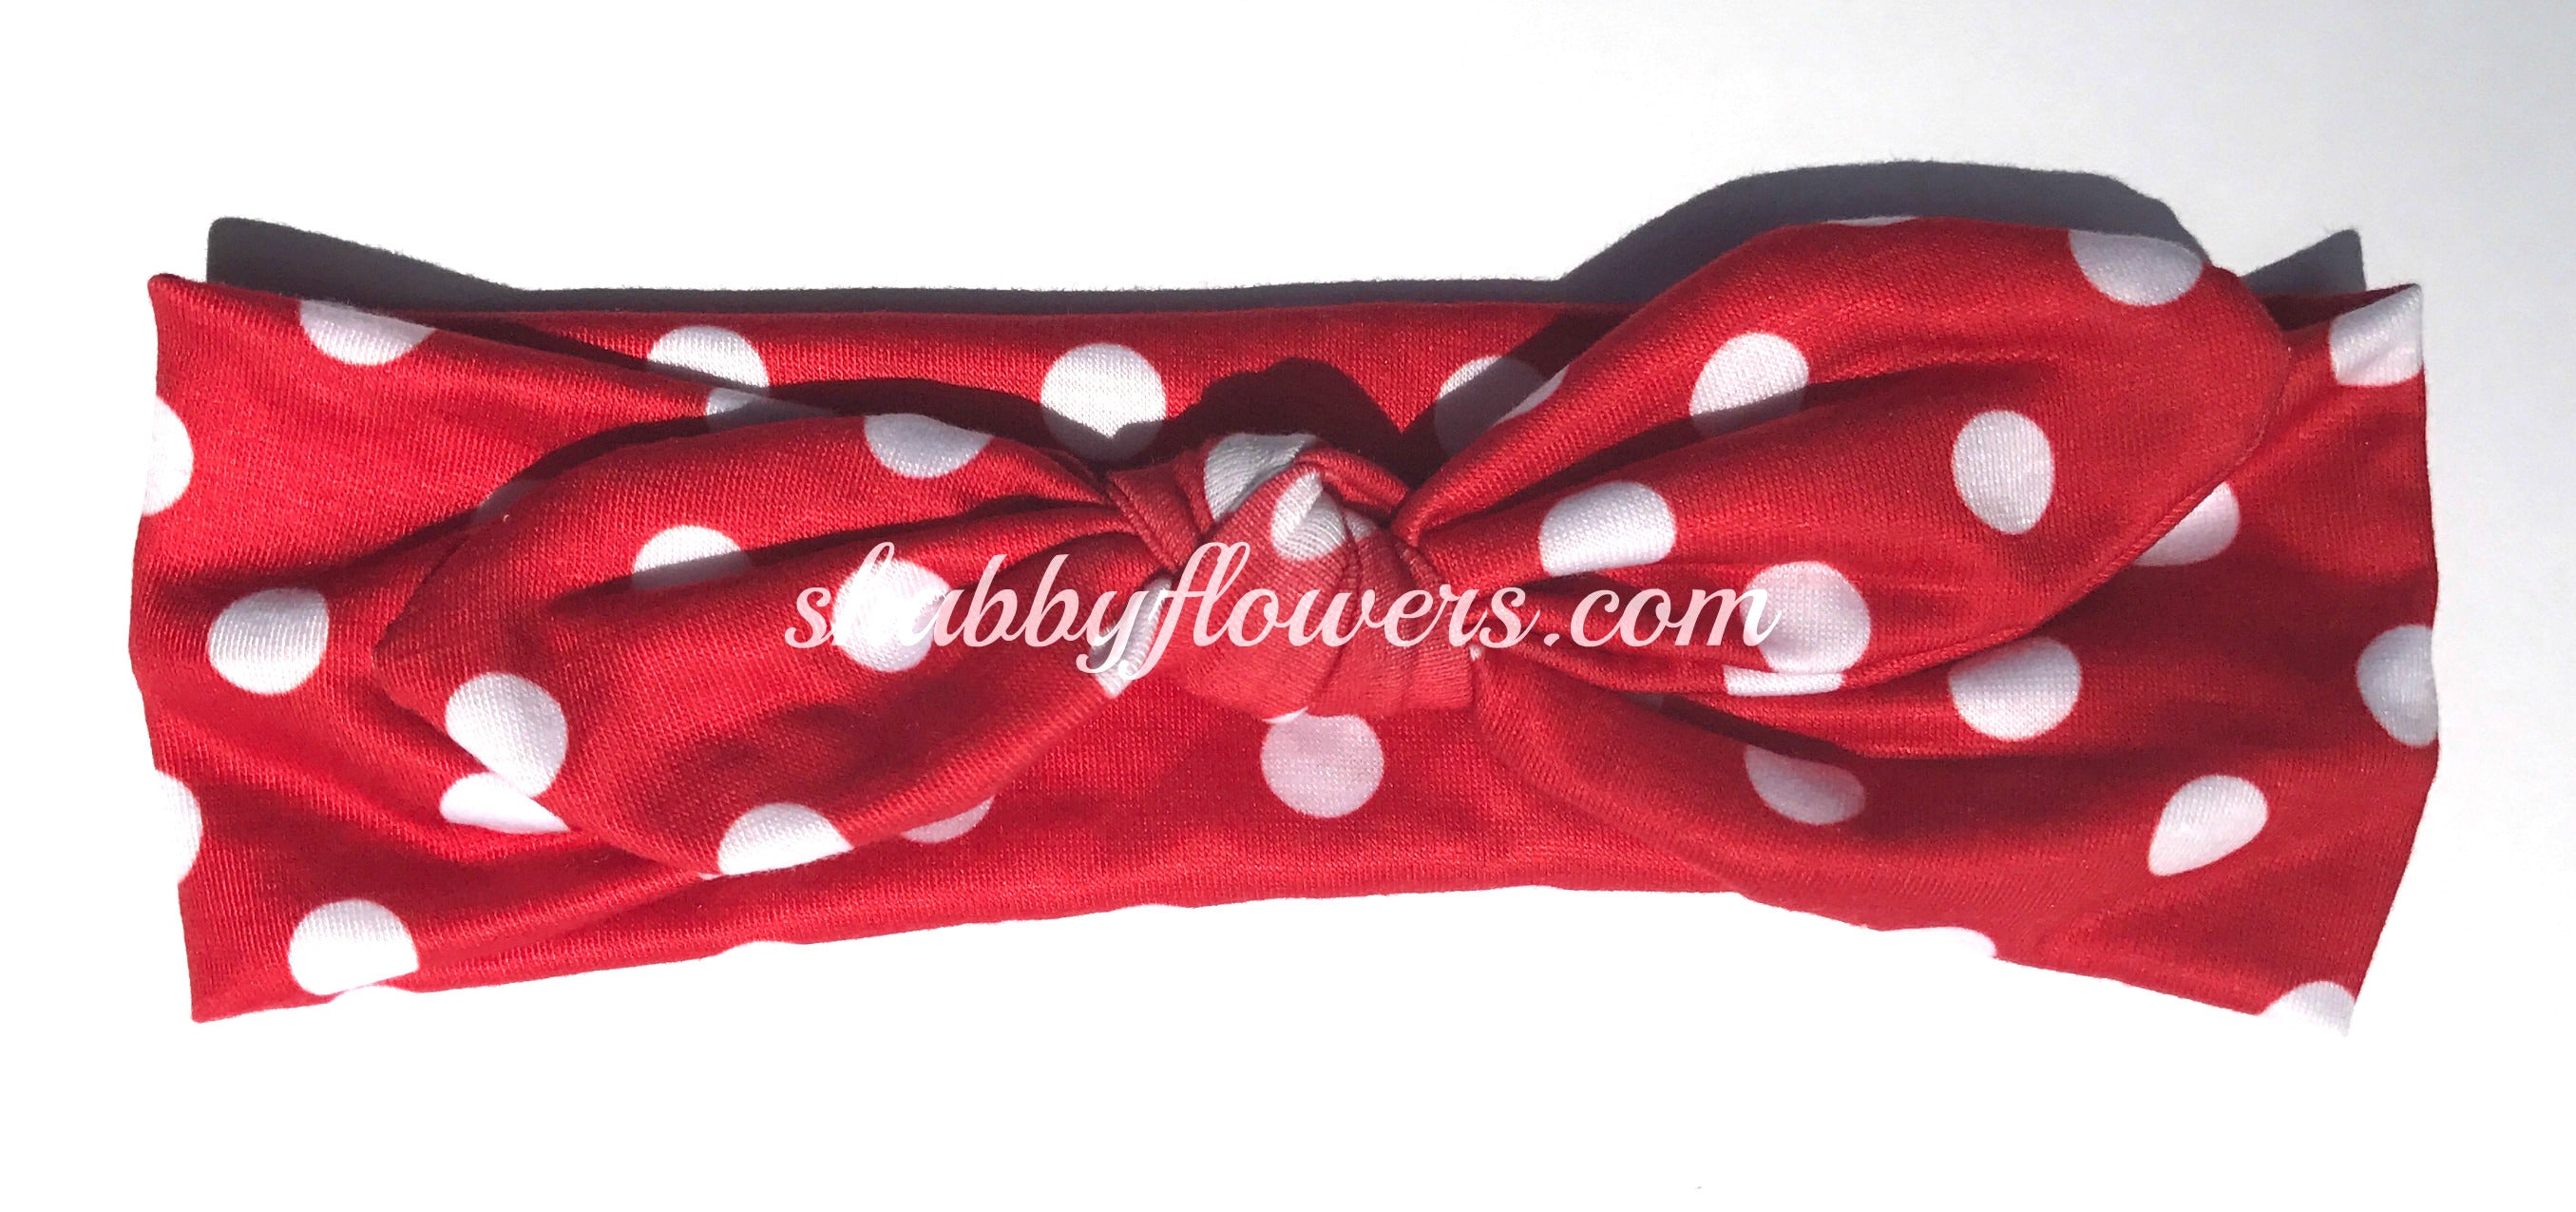 Knot Headband - White Dots on Red - Size Regular